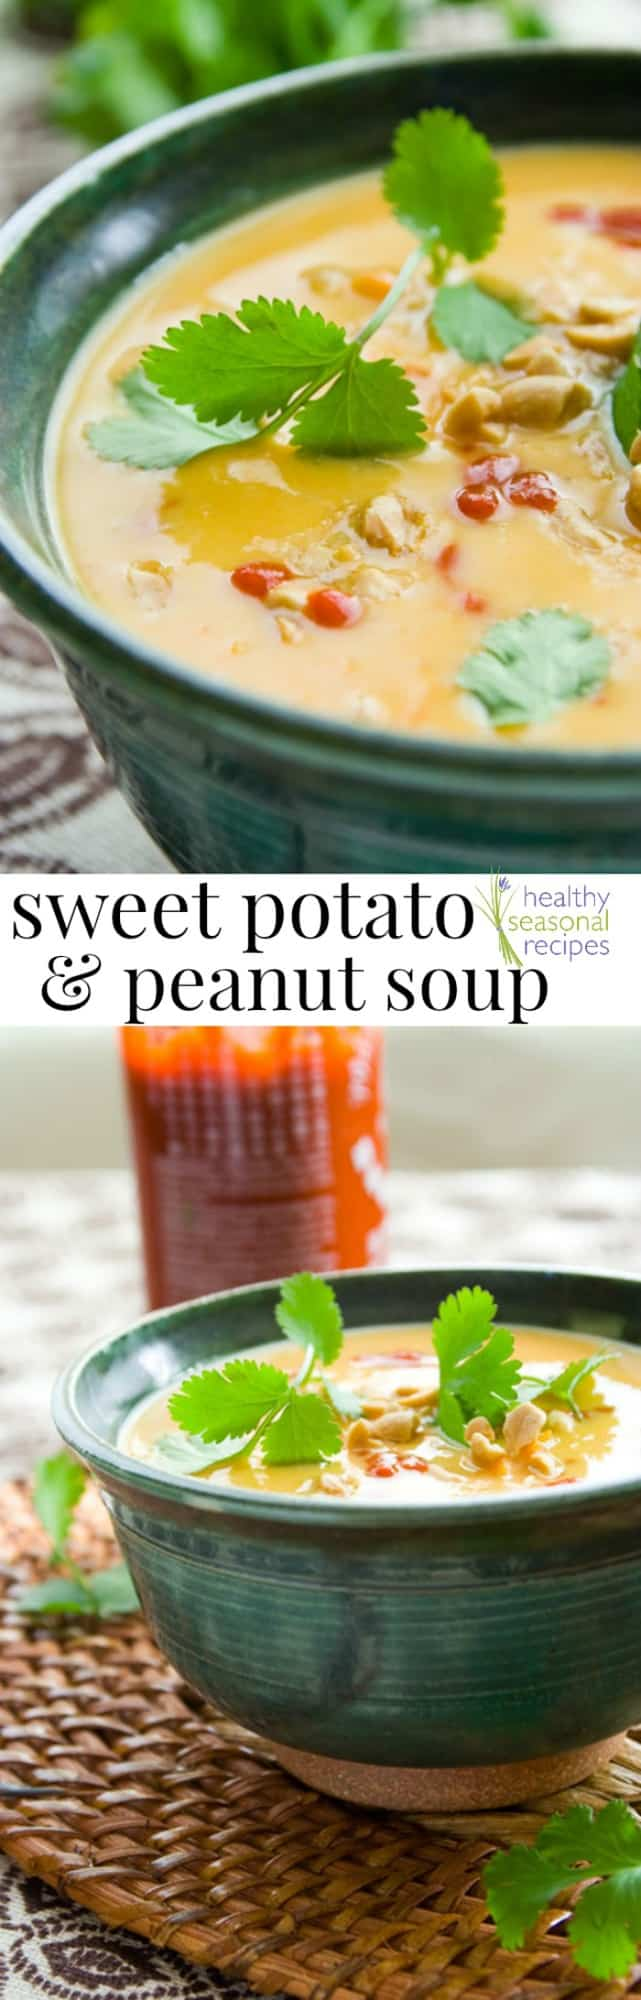 A bowl of soup on a table, with Potato and Peanut with sriracha and text